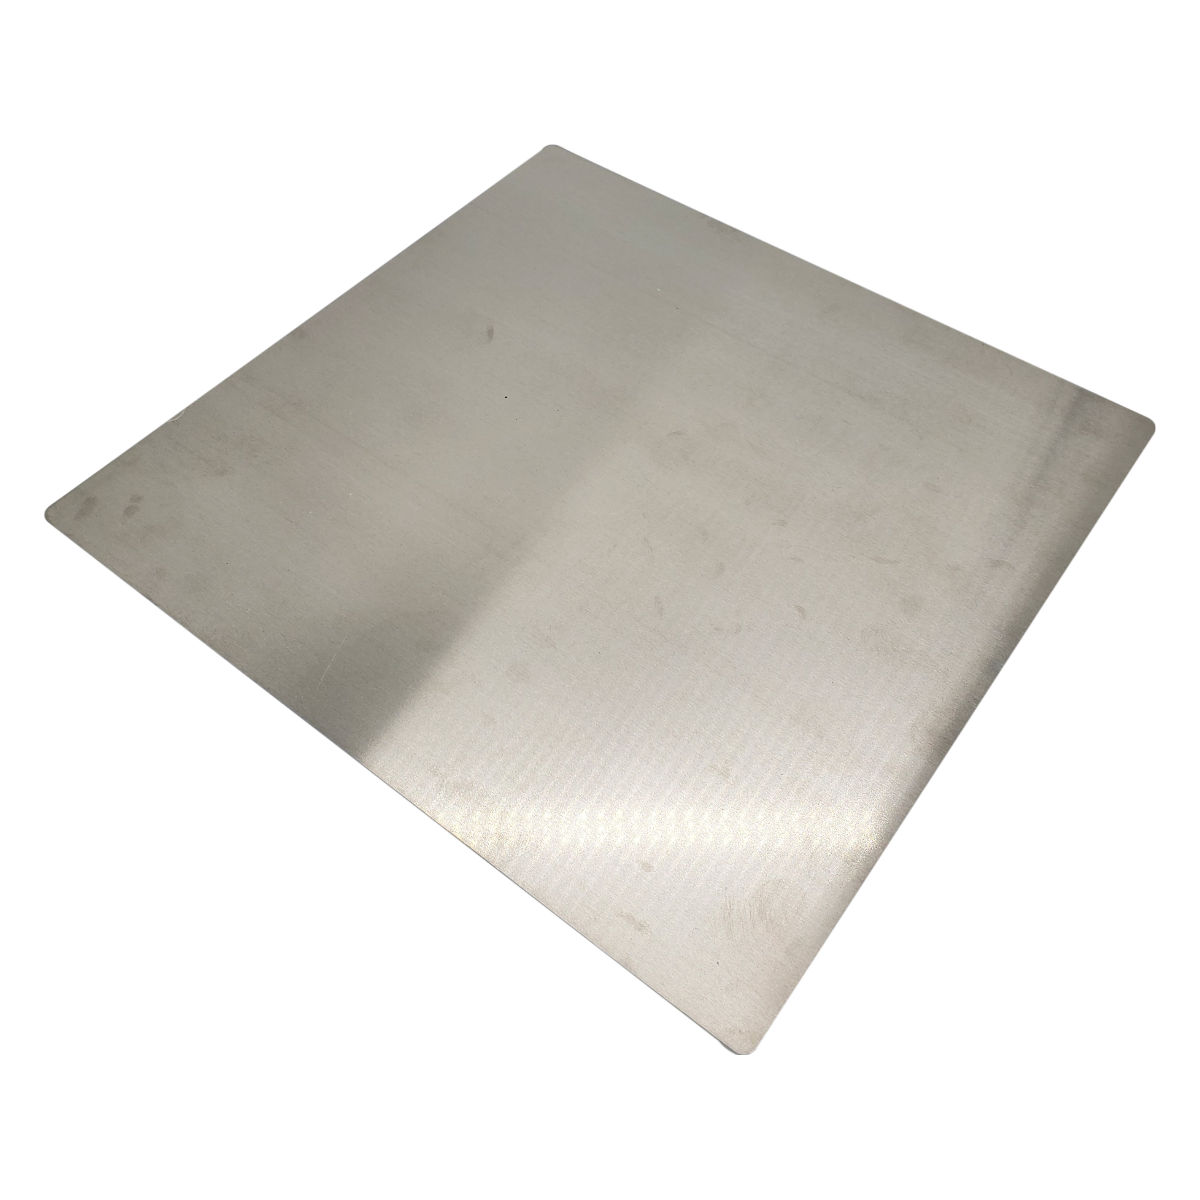 Creality Replacement Aluminum Plate for Heat Bed - 3D Printing Spare Parts Canada